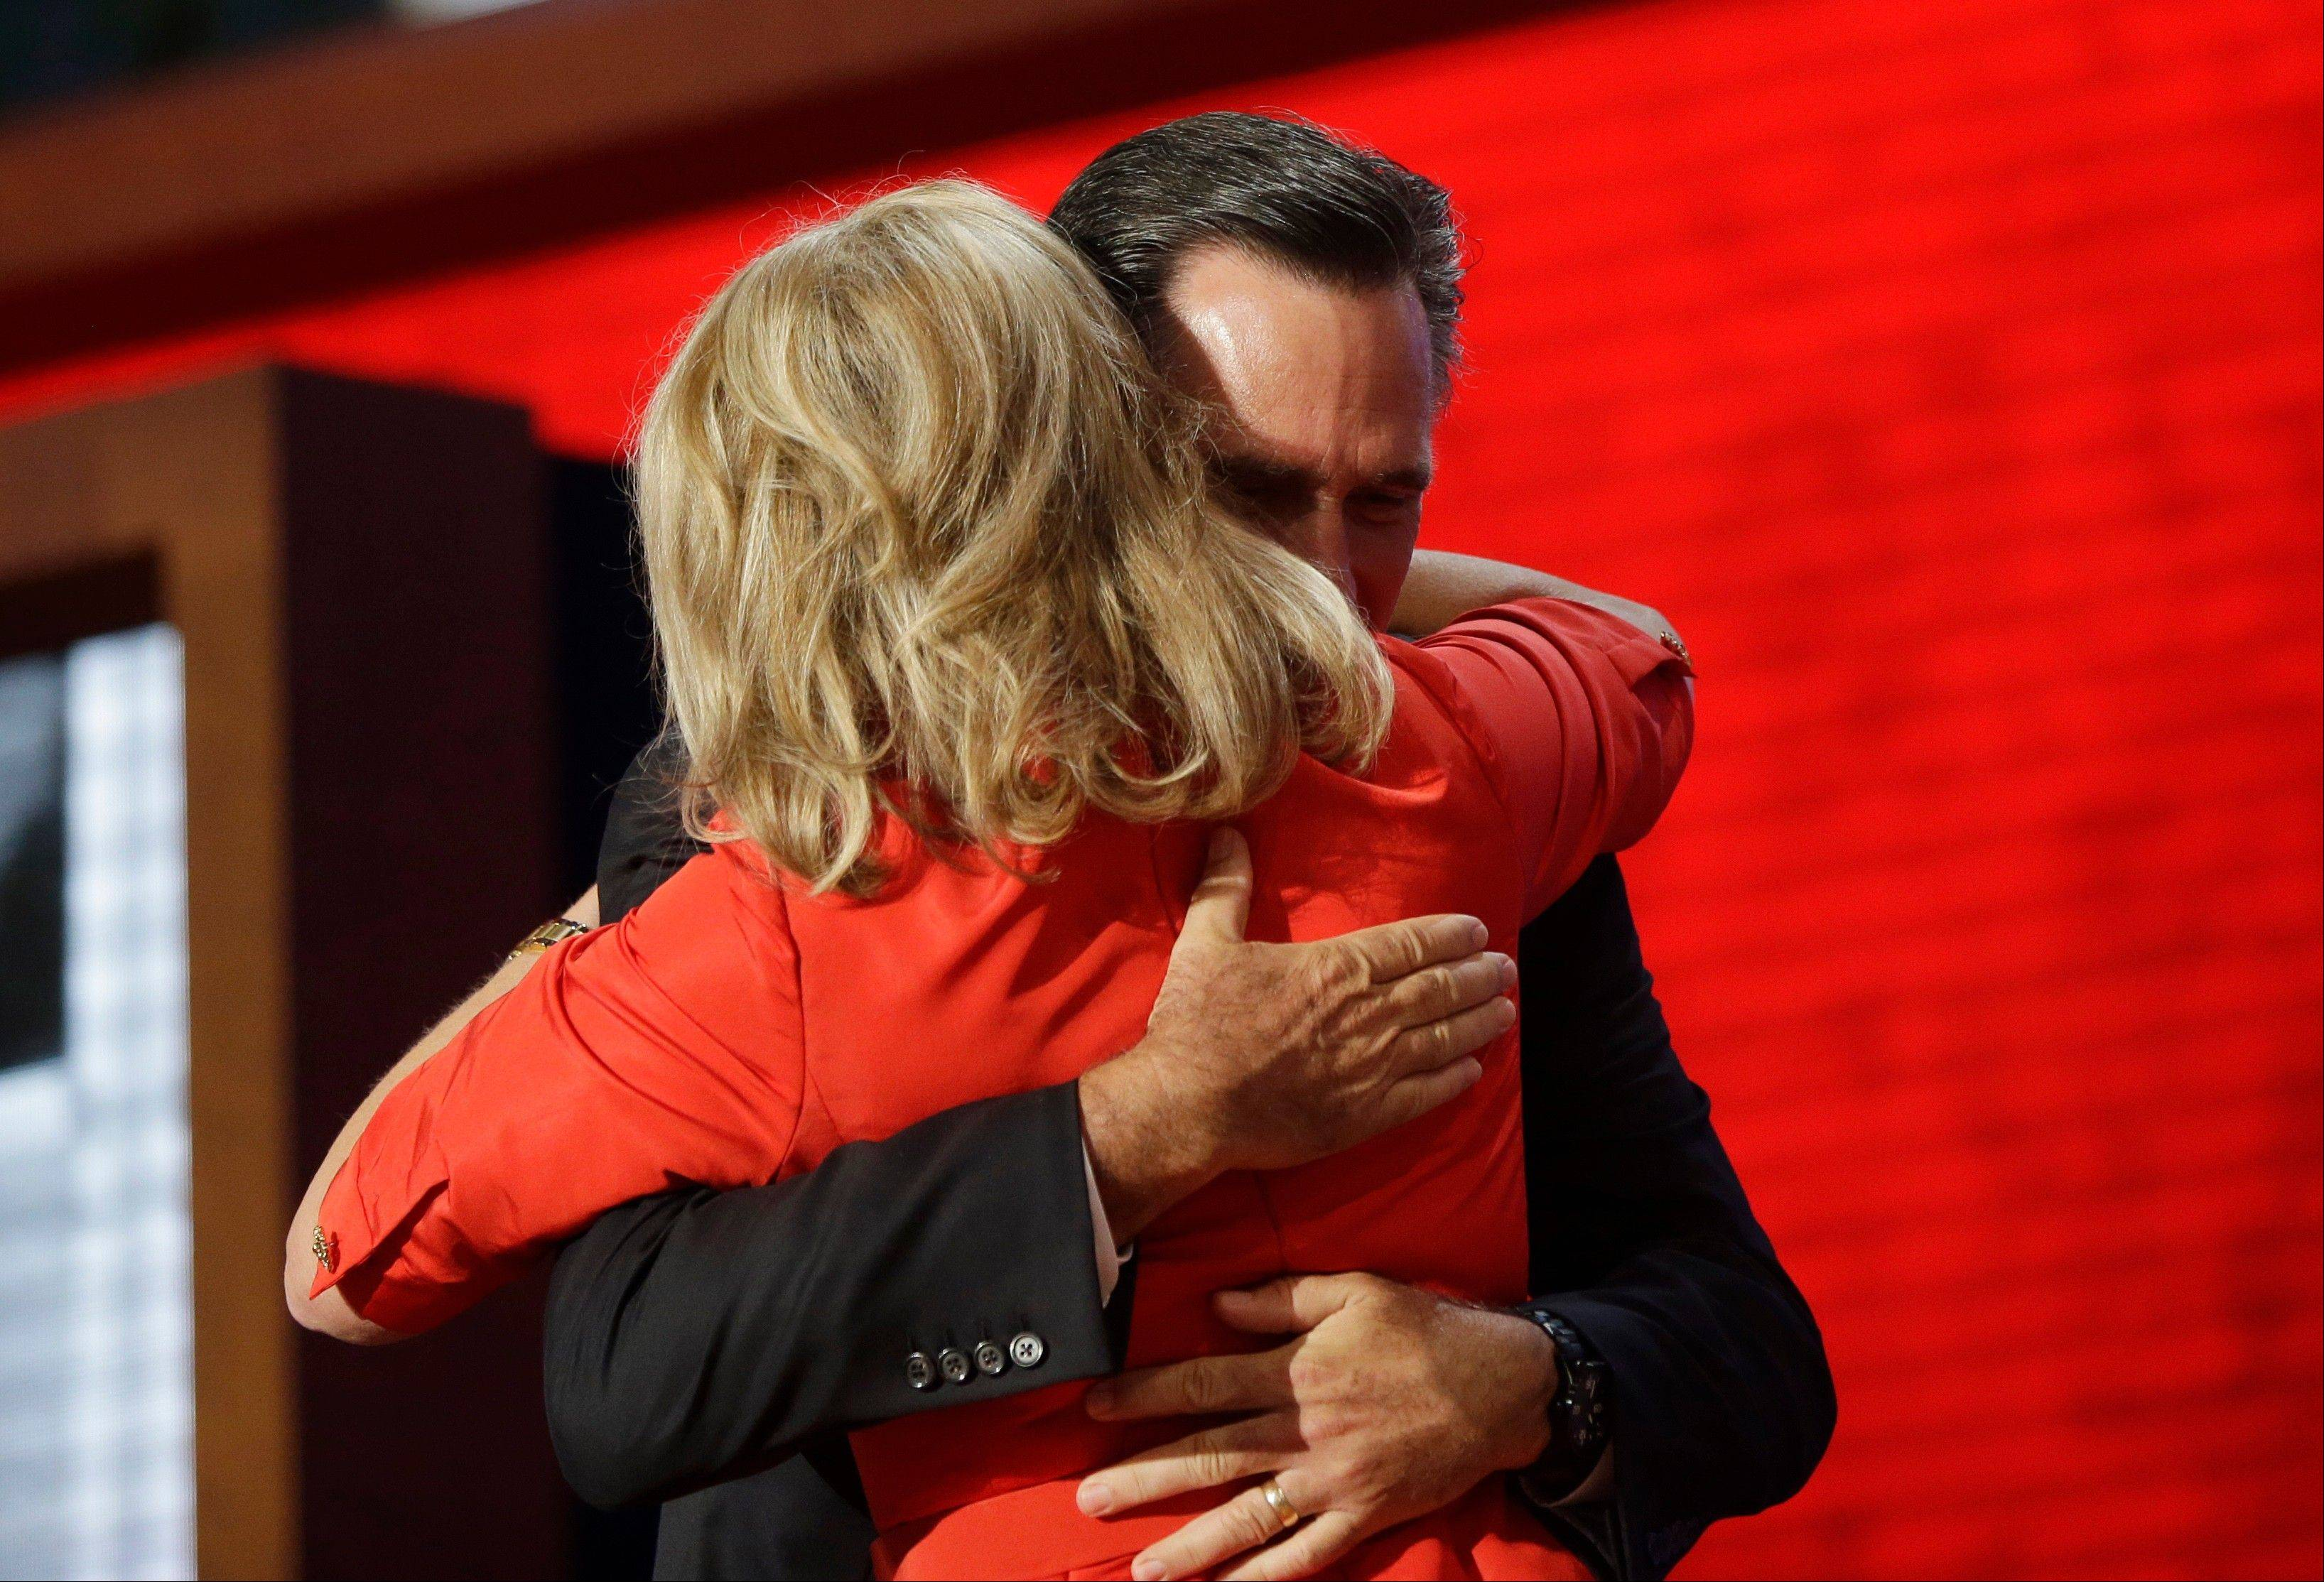 Republican presidential nominee Mitt Romney hugs his wife Ann Romney on stage at the Republican National Convention in Tampa, Fla. on Tuesday, Aug. 28, 2012.